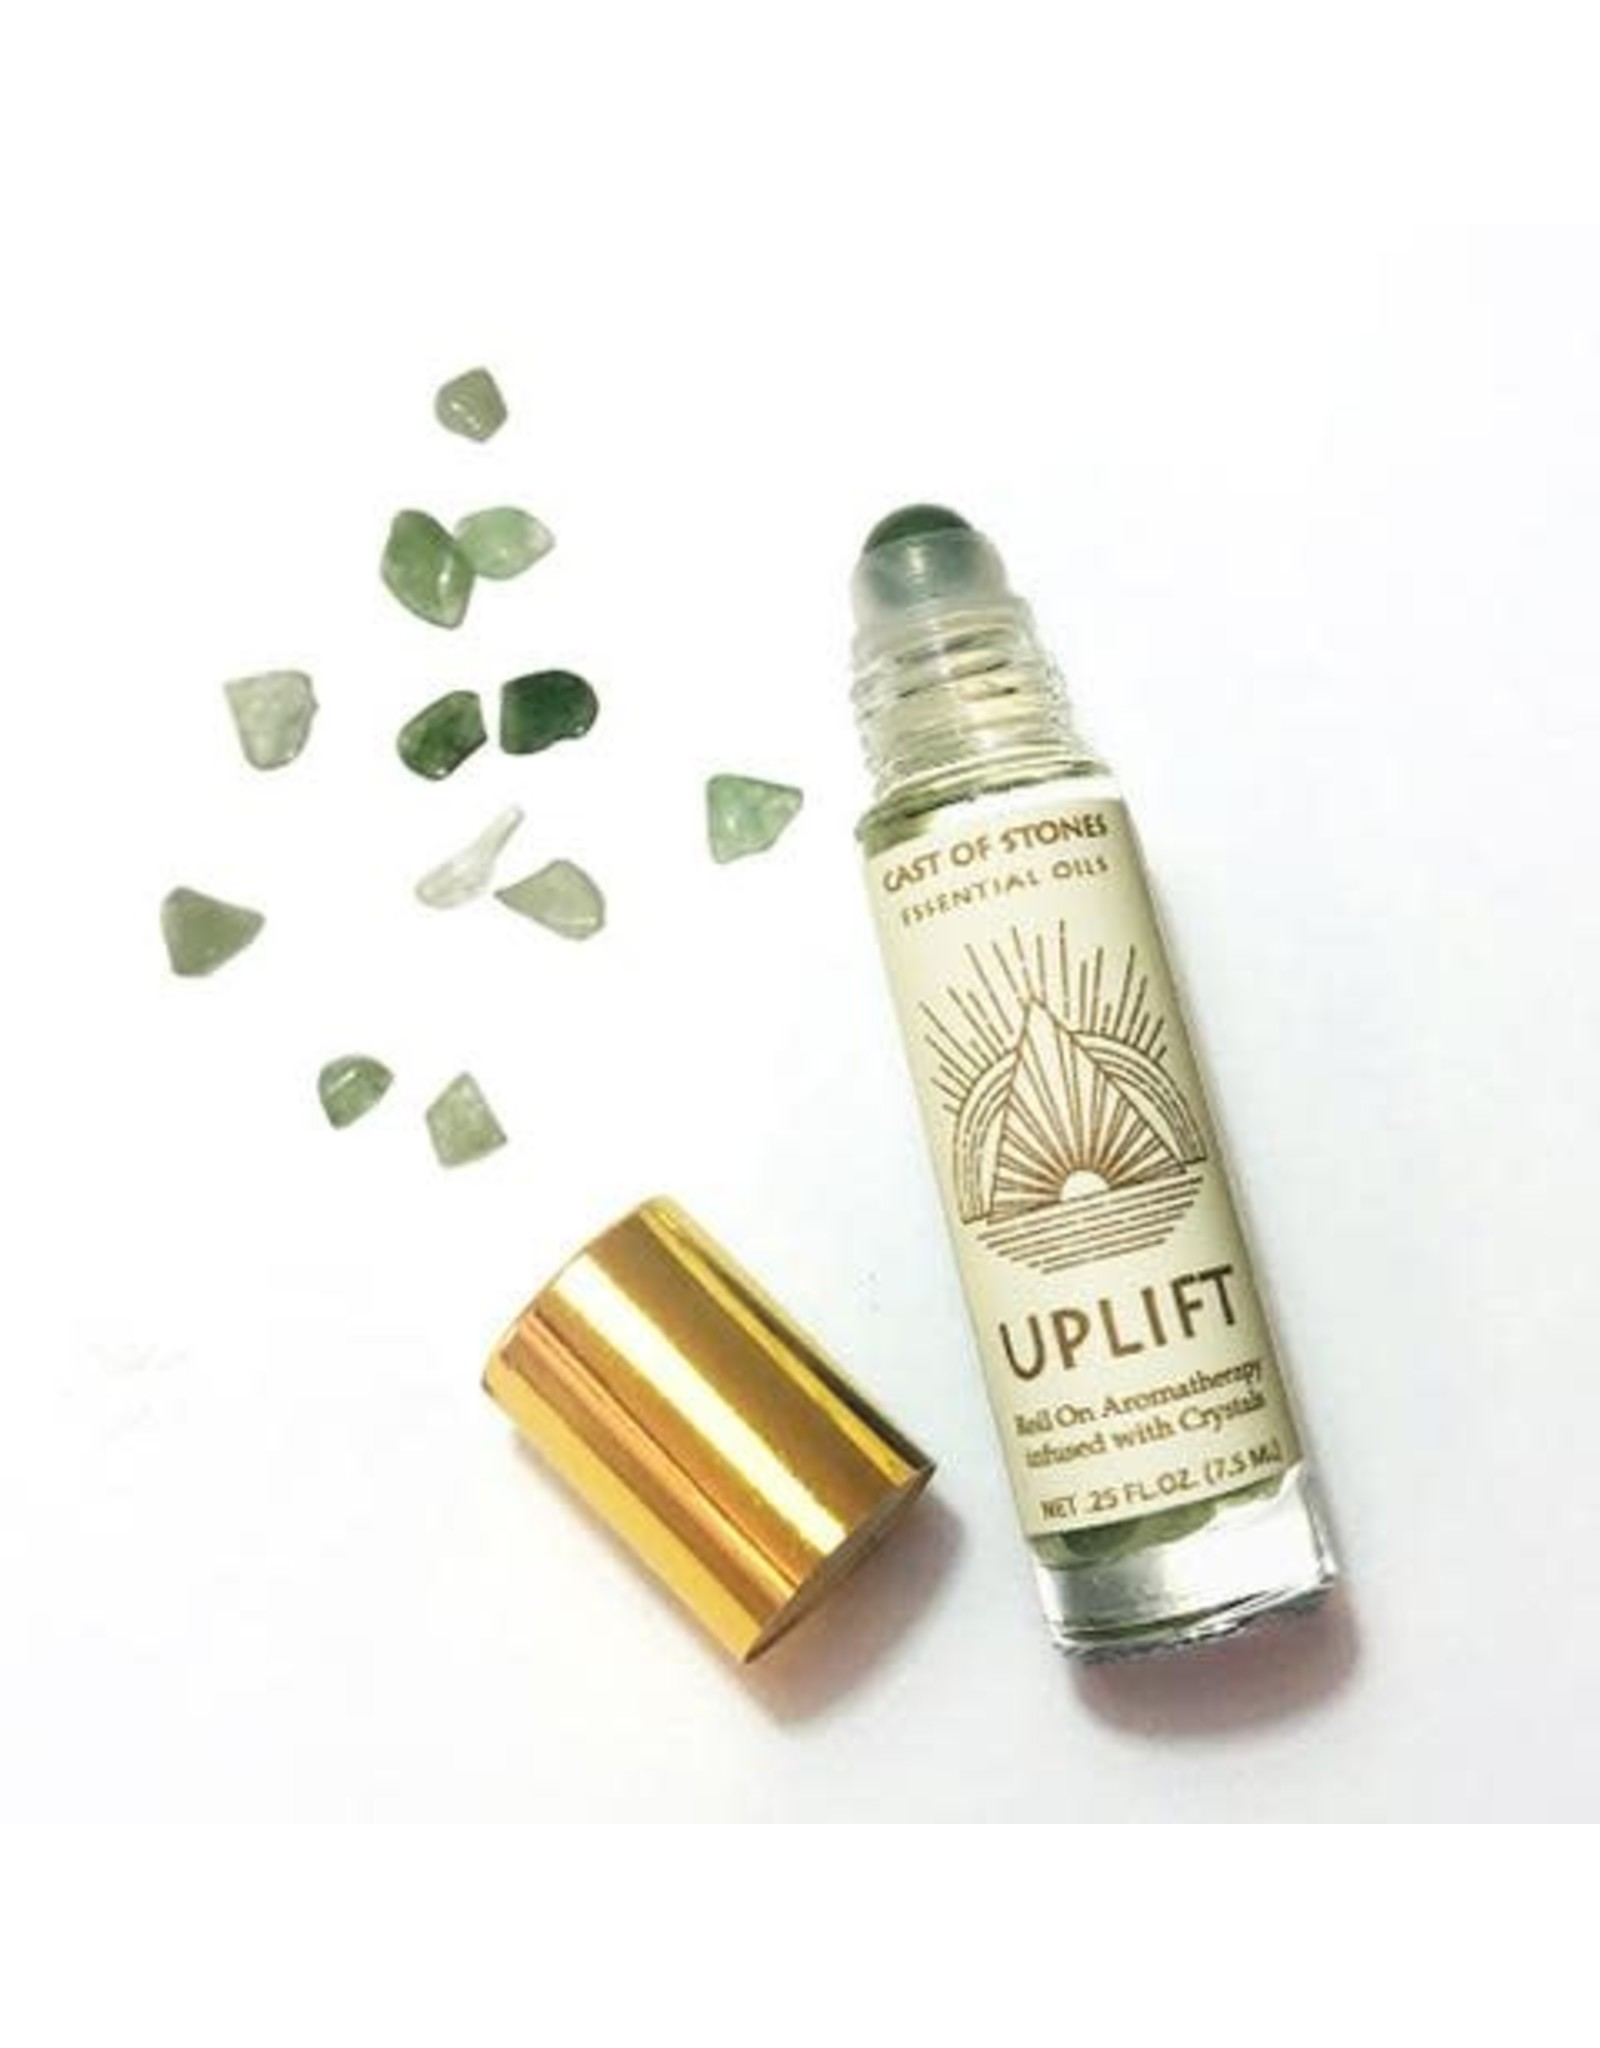 "Cast Of Stones ""Uplift"" Essential Oil"